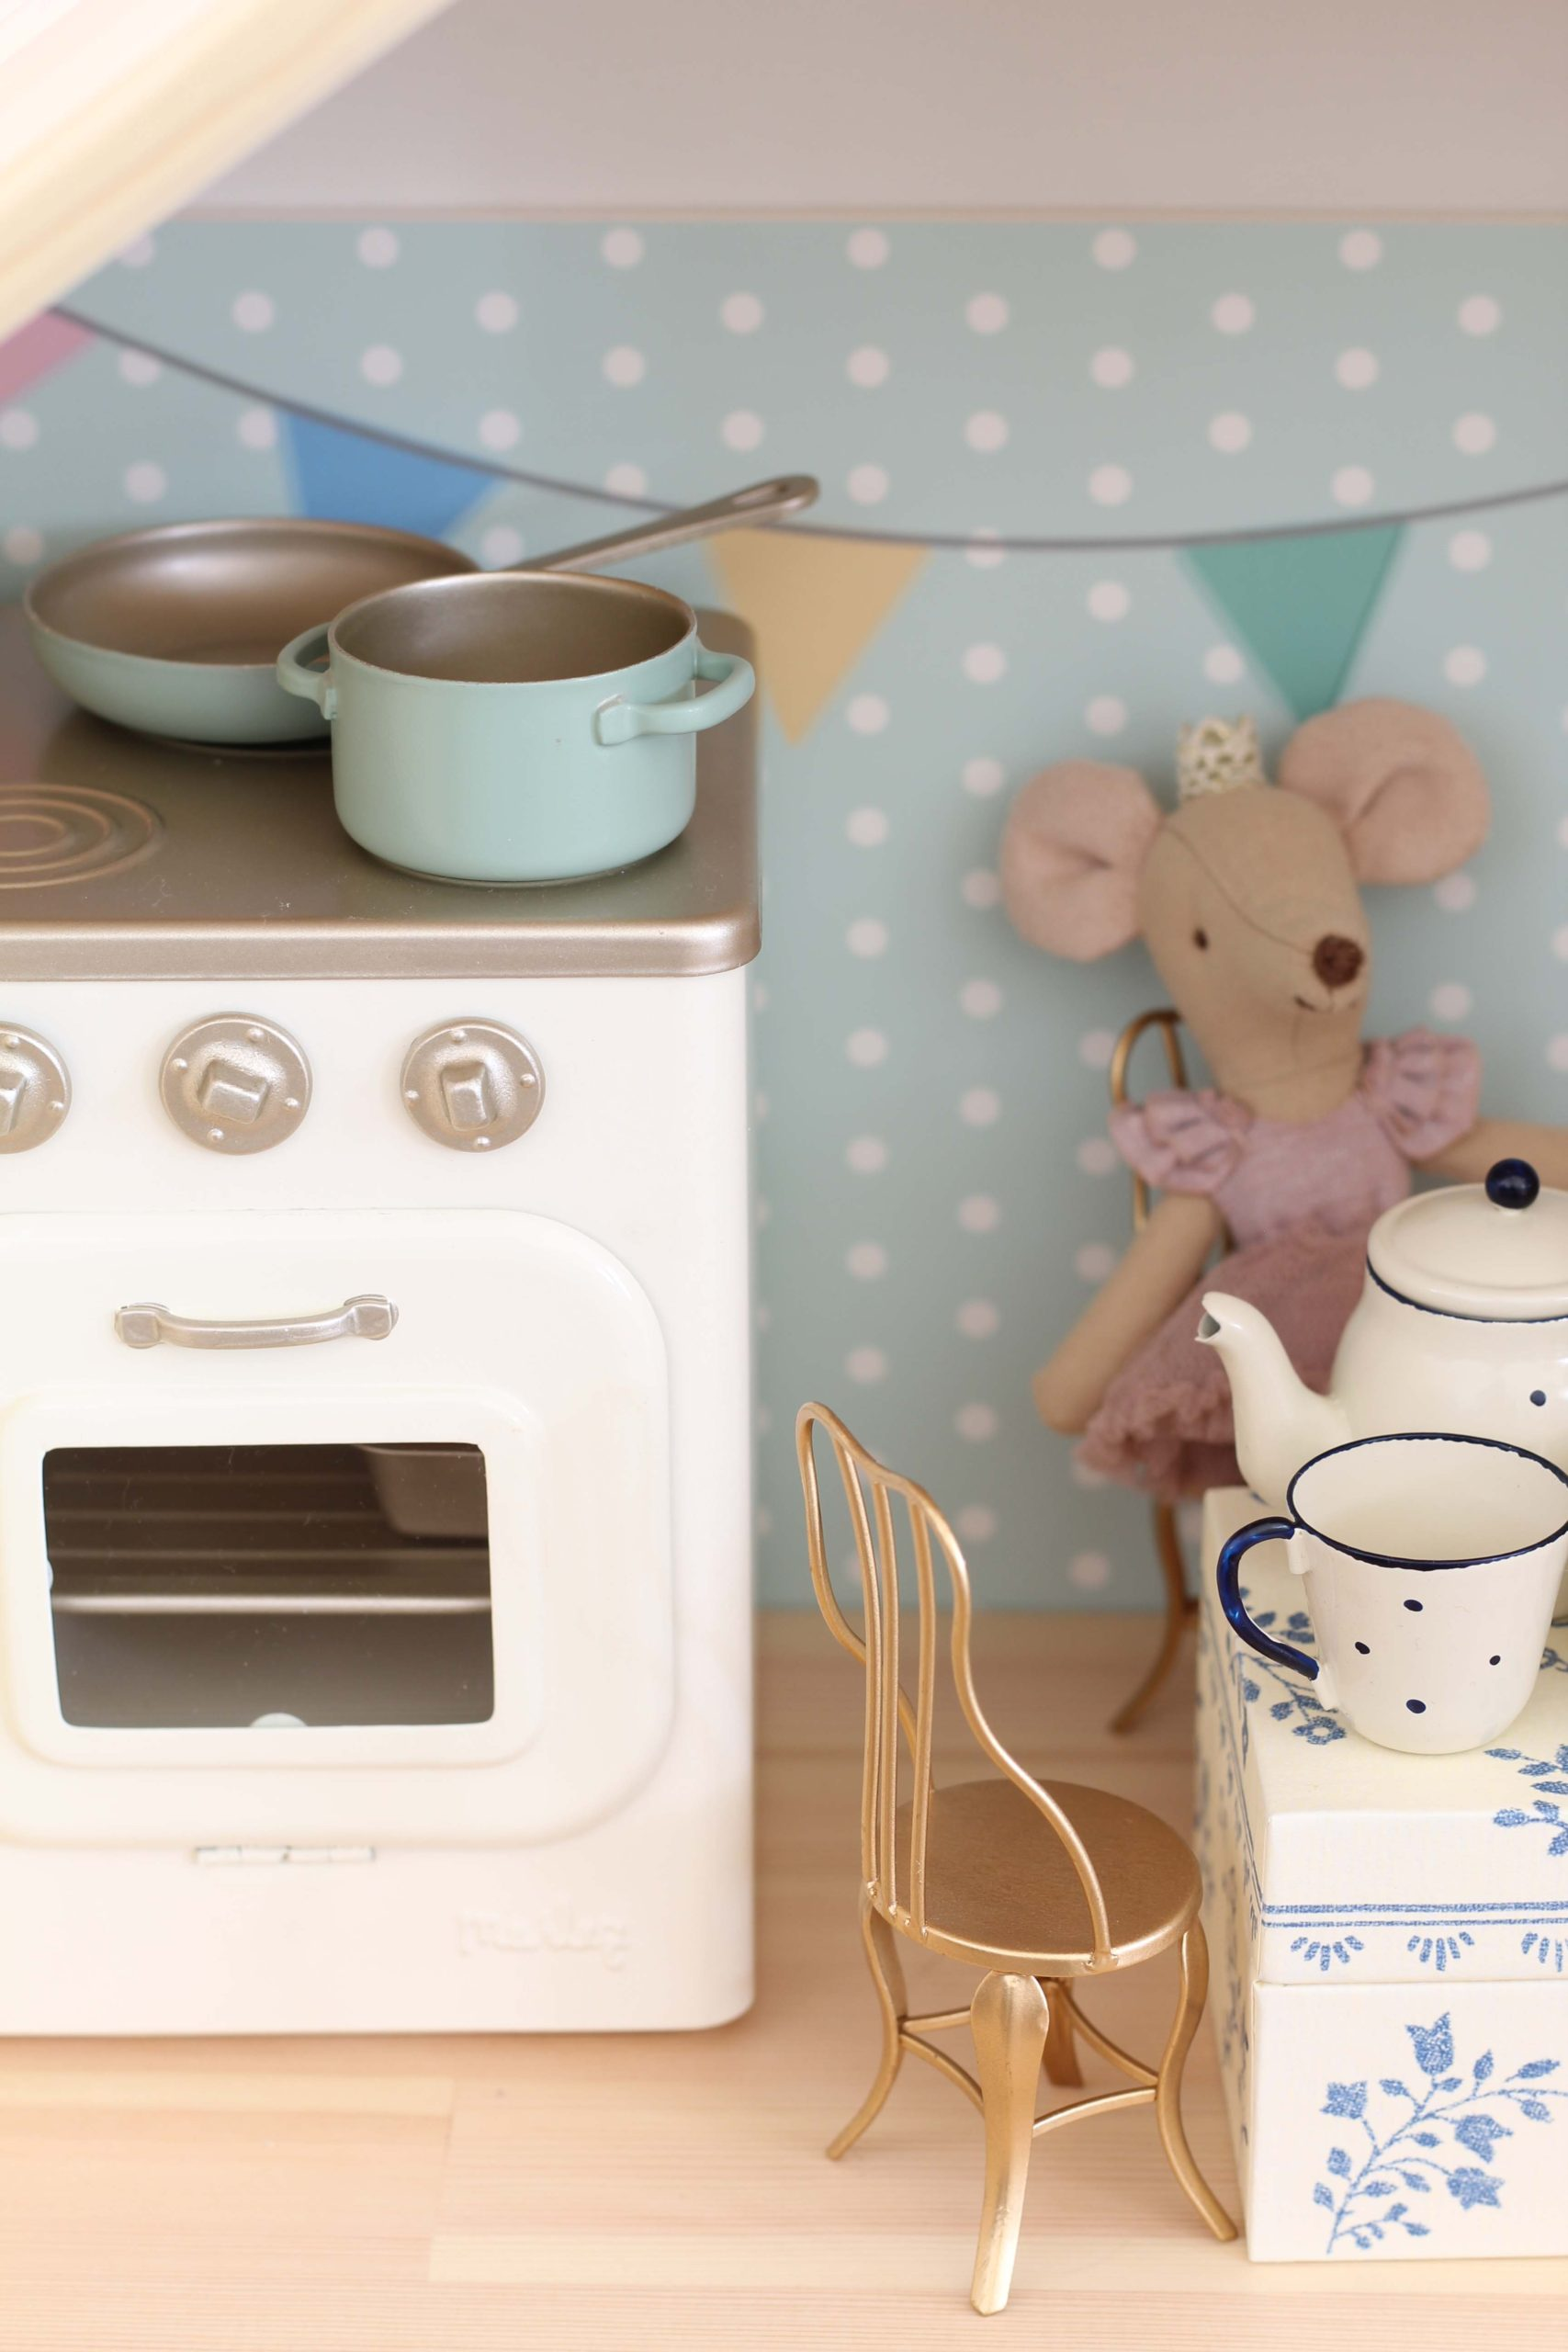 maileg mouse oven and pots and pans